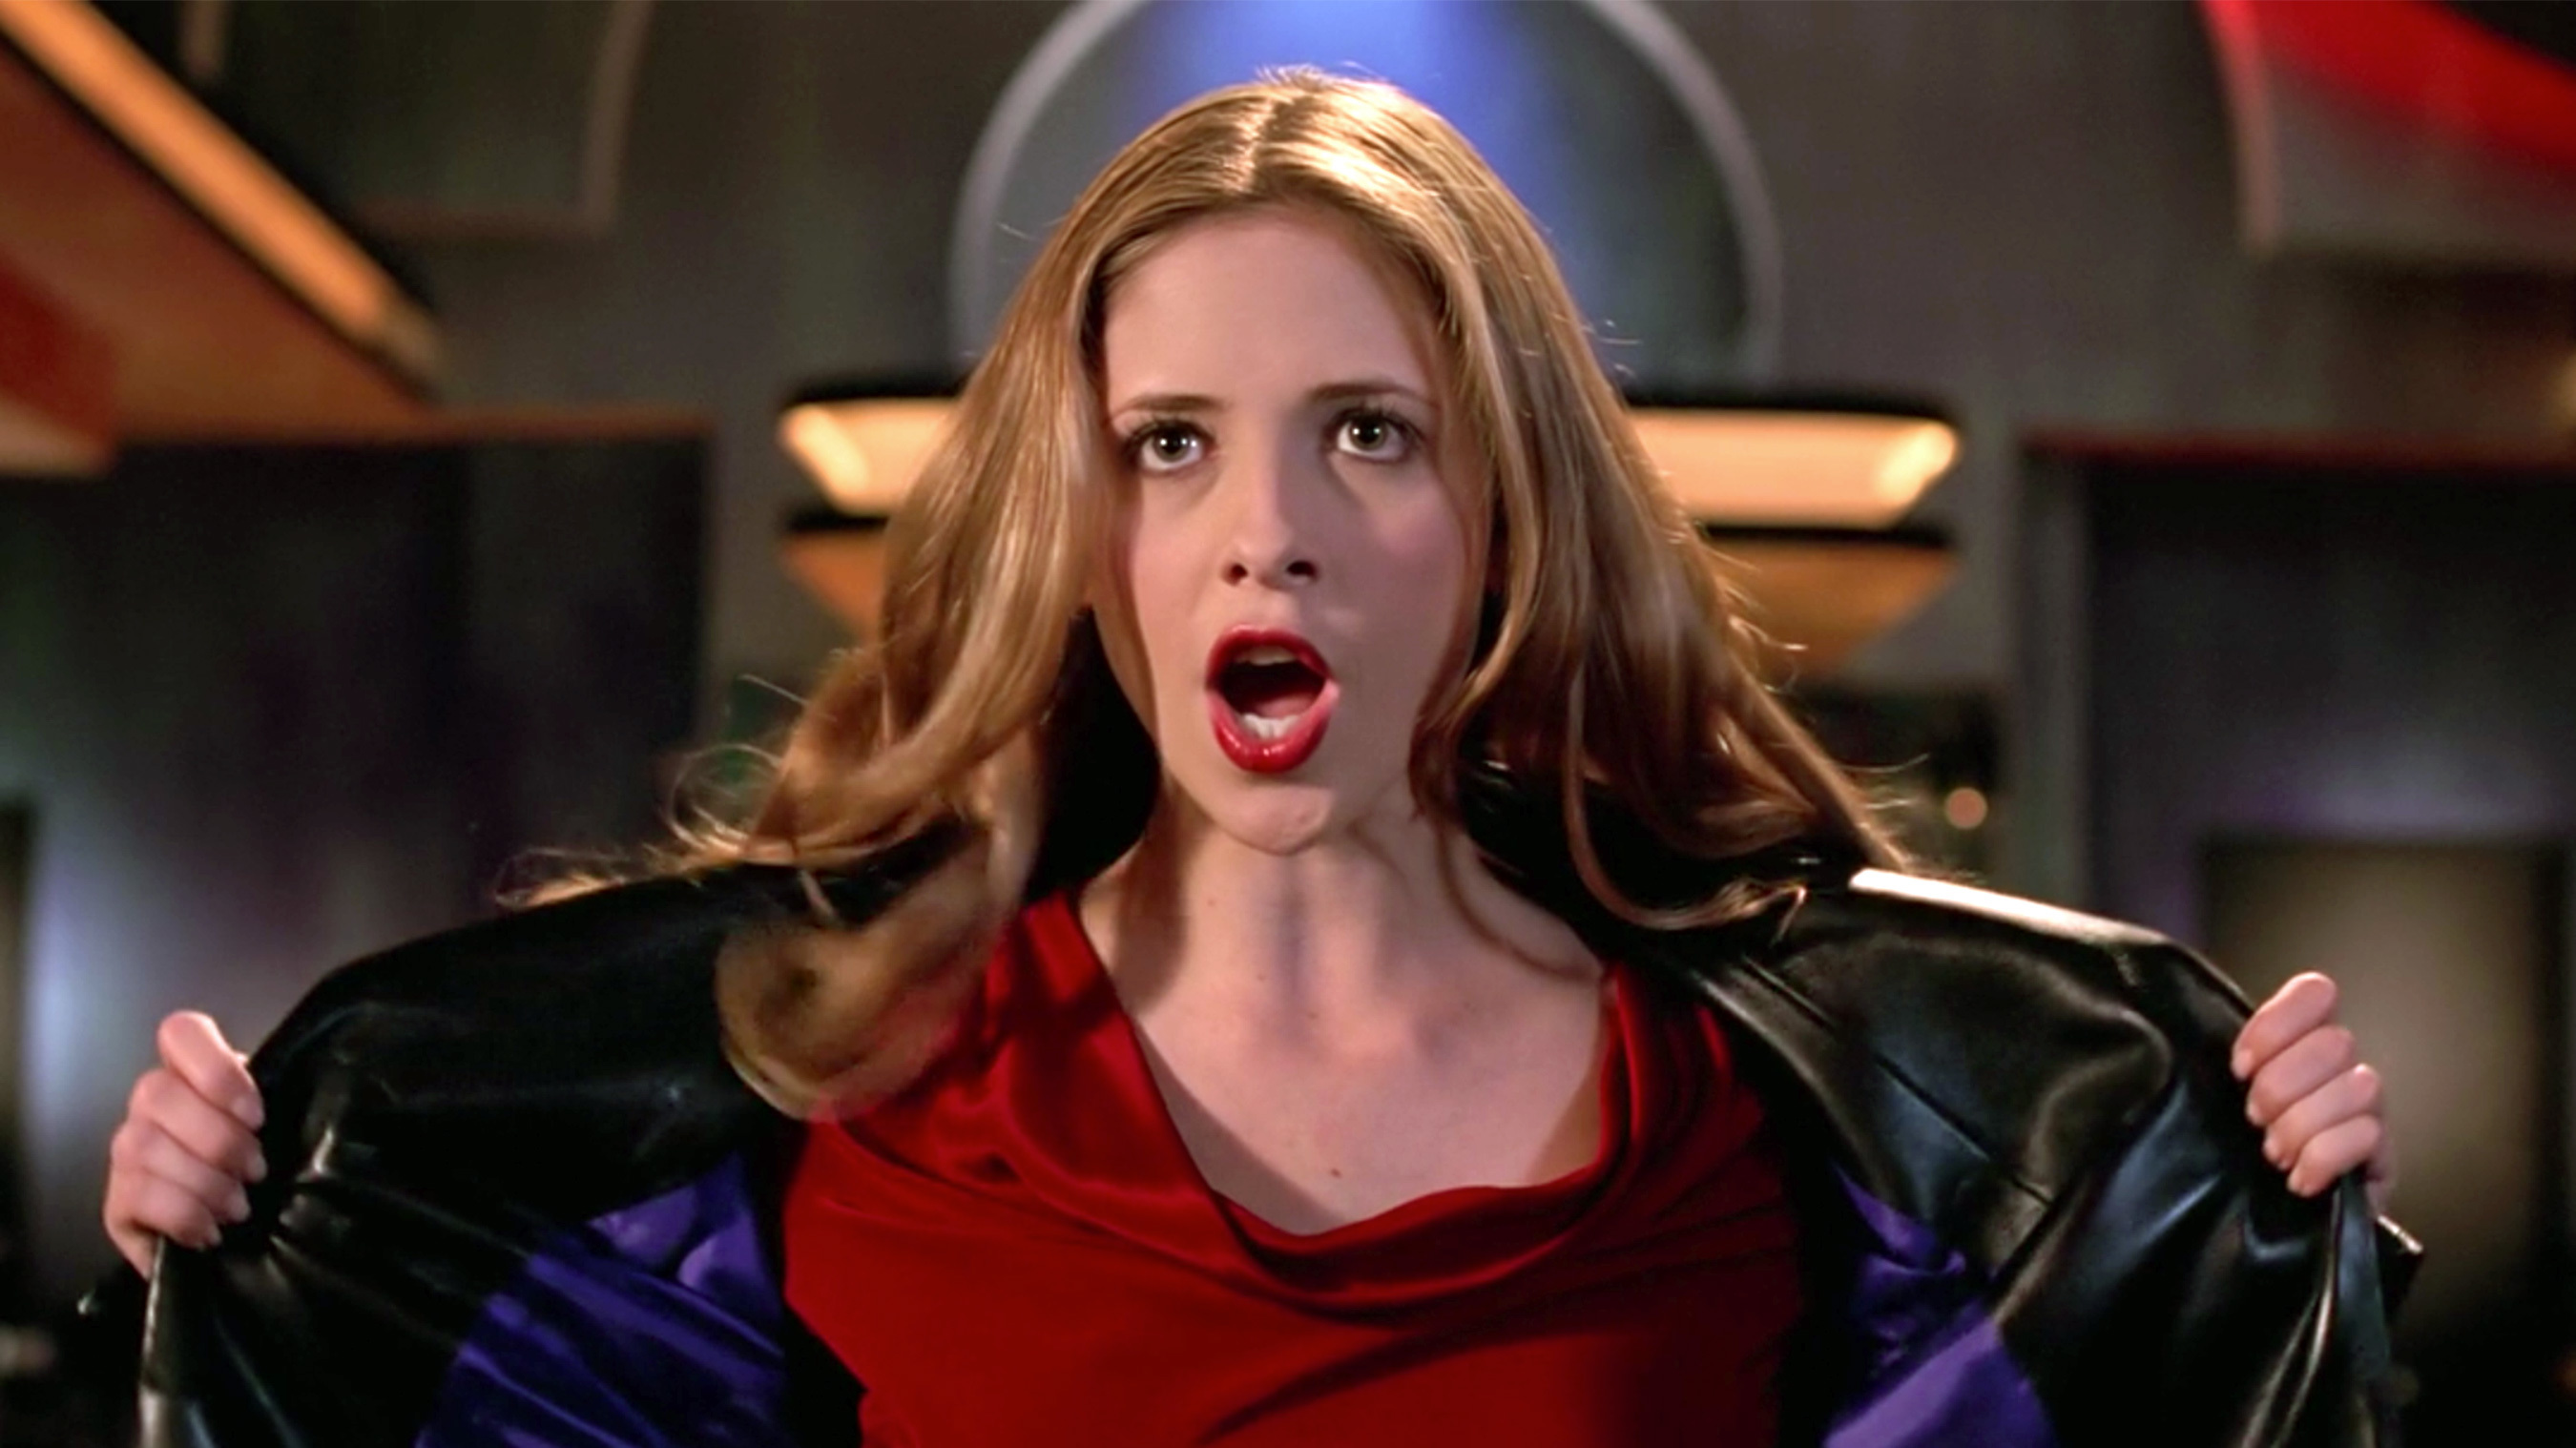 Buffy the Vampire Slayer's Musical Episode Is Finally Getting the Vinyl Release It Deserves